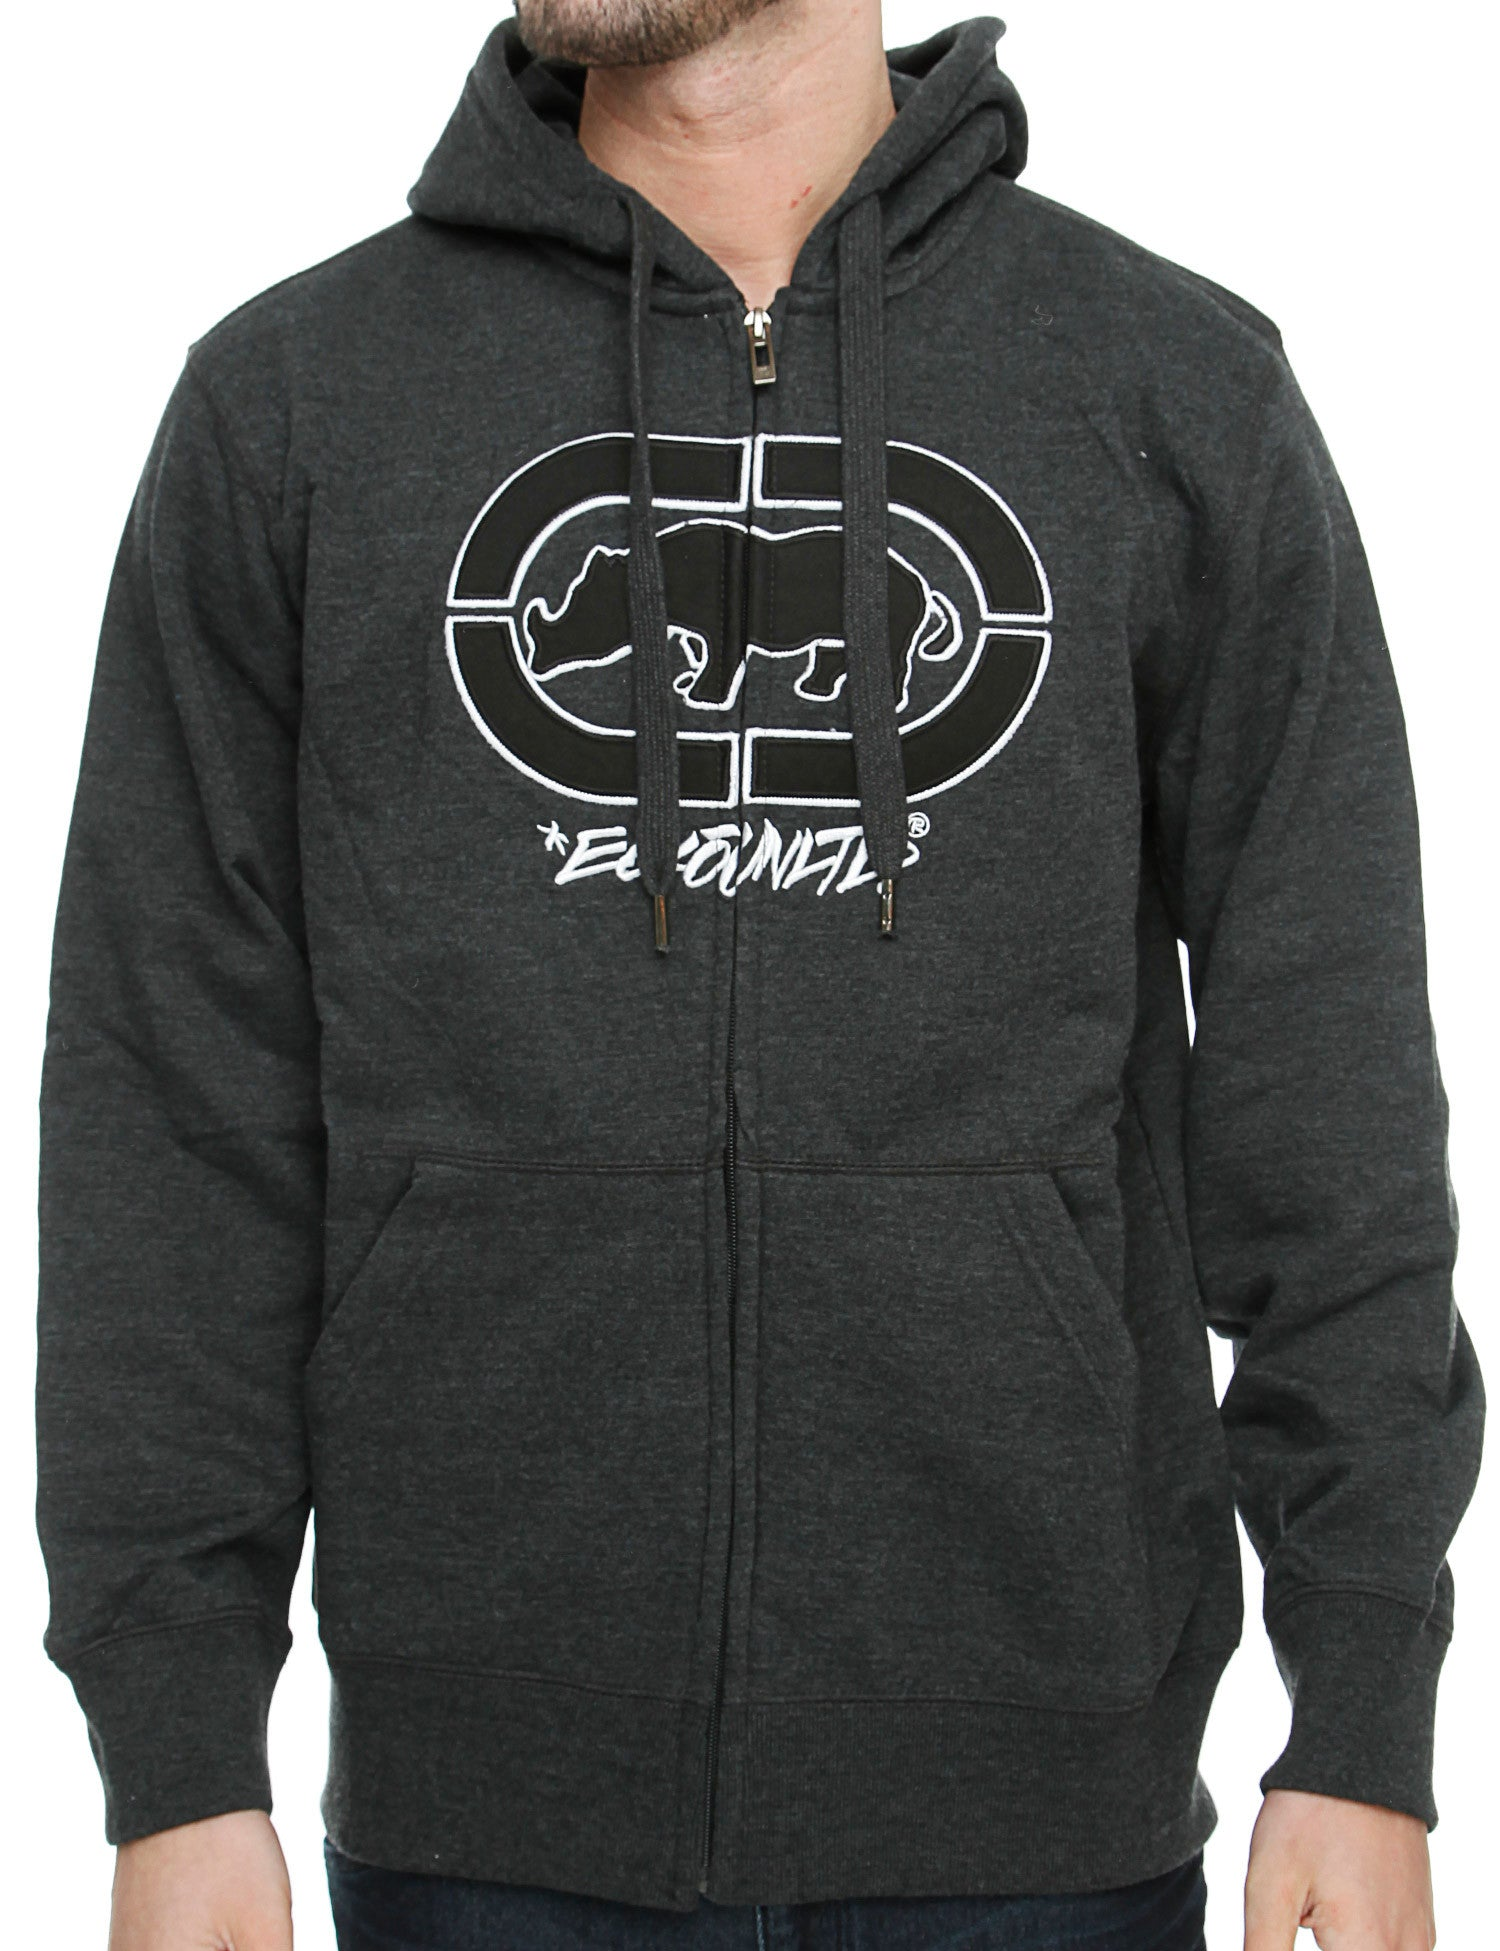 Image of Ecko Cross Country Zip Hoody E7P03959 Black